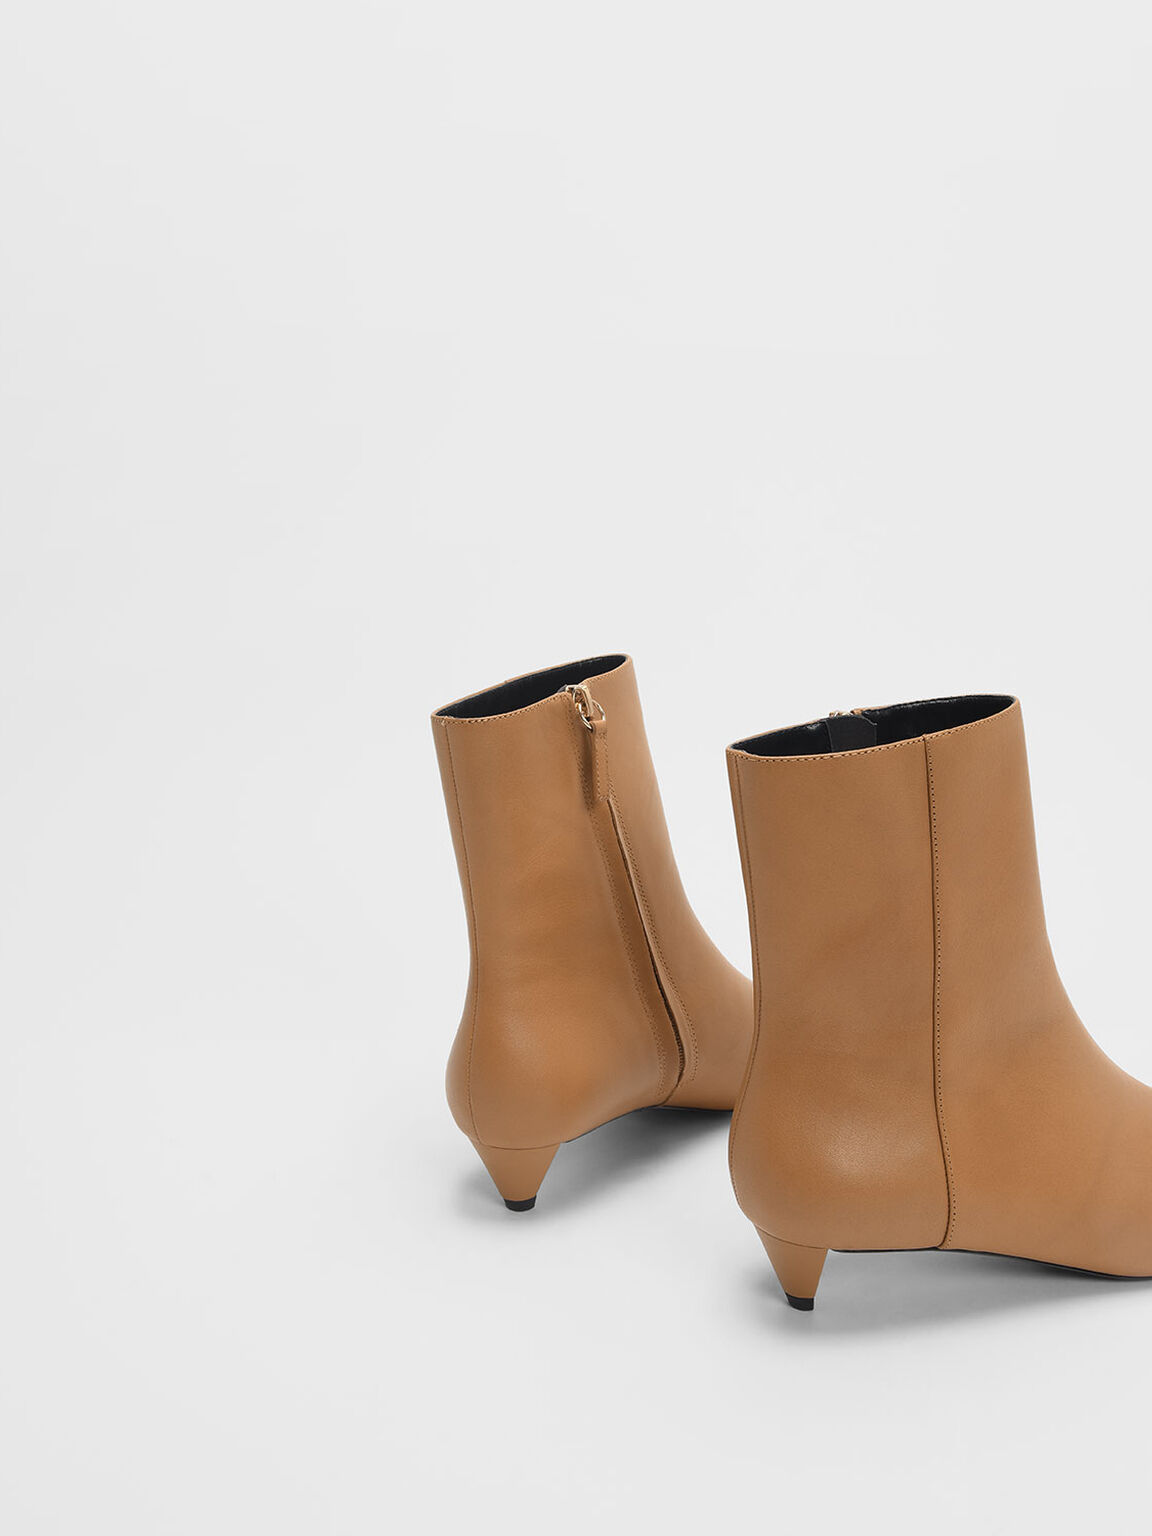 Kitten Cone Heel Leather Ankle Boots, Caramel, hi-res